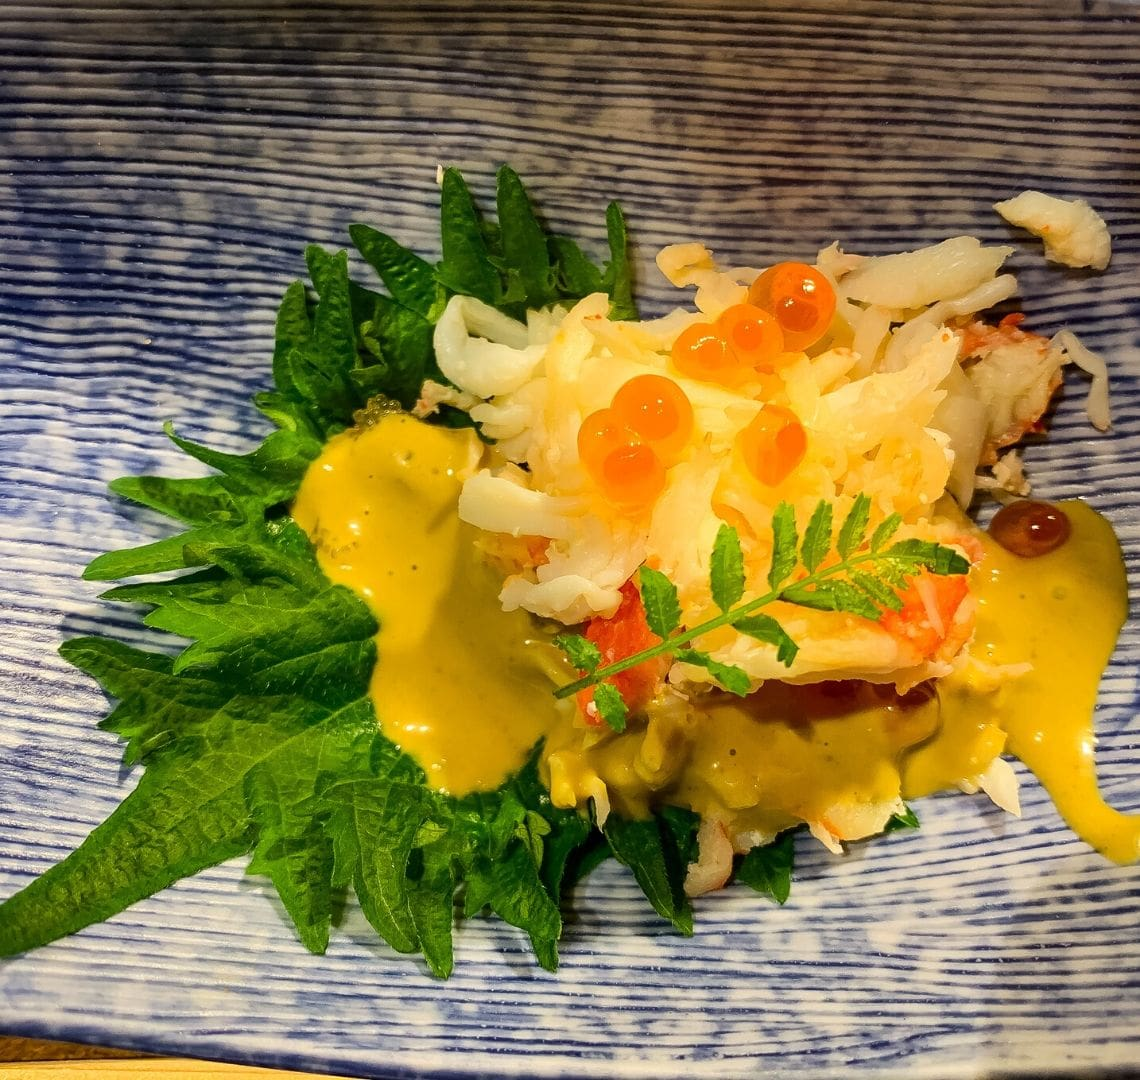 5 reasons to go family skiing in Niseko Wanderlust Family - a delicious starter of tiger prawn with cod roe on a yuzu leaf with yellow sauce all on a blue and white Japanese style plate